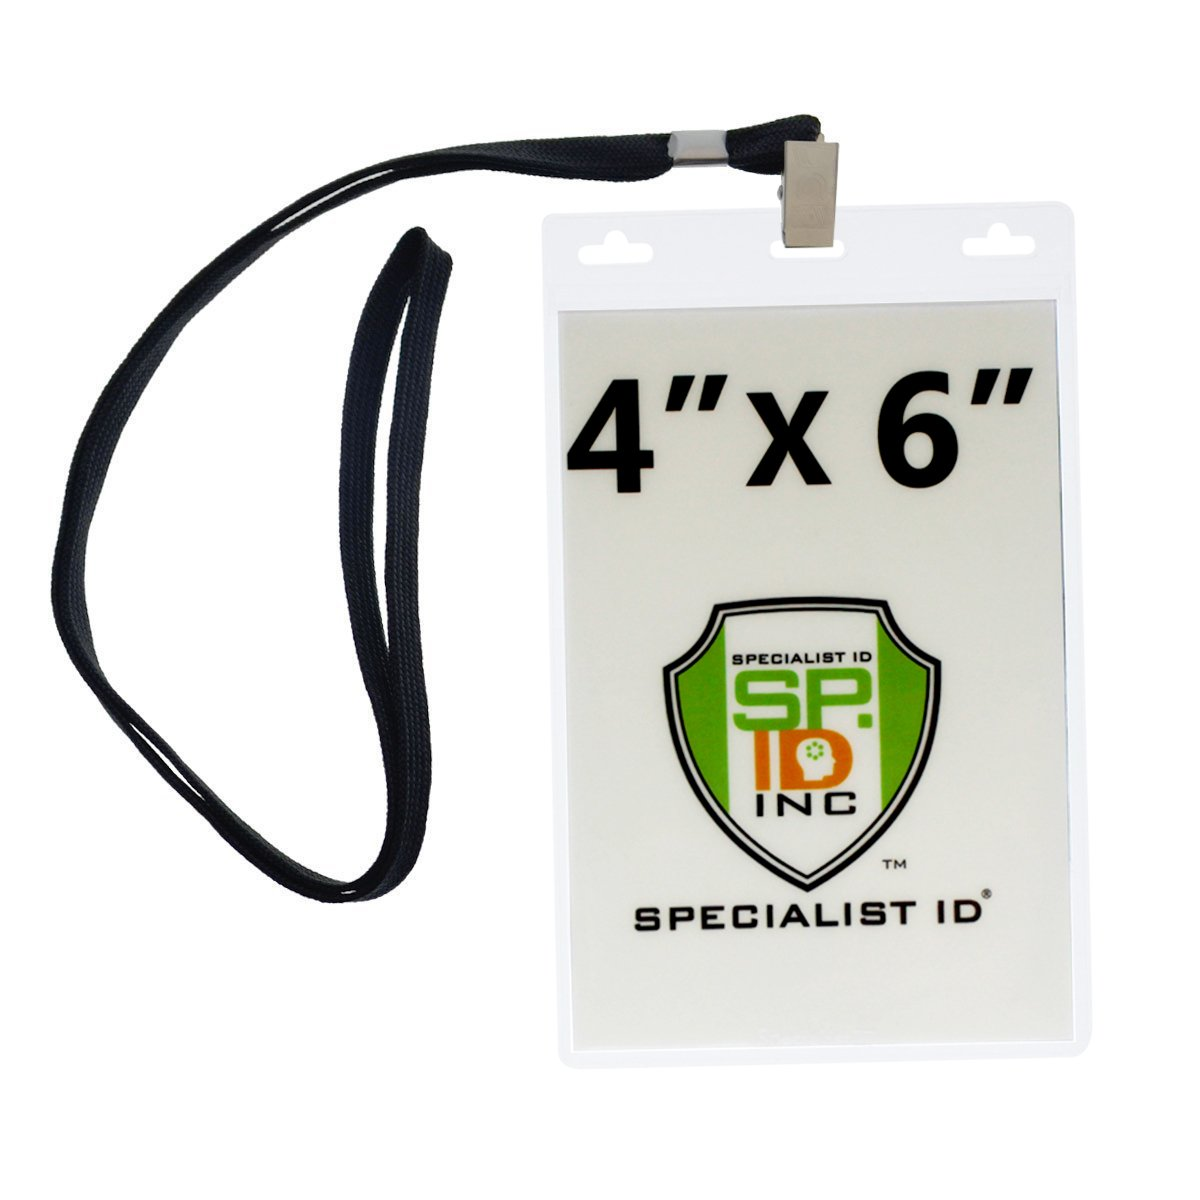 4X6 Inch Extra Large Badge & Credential Holders (Pack of 10) with Lanyards by Specialist ID (Black)